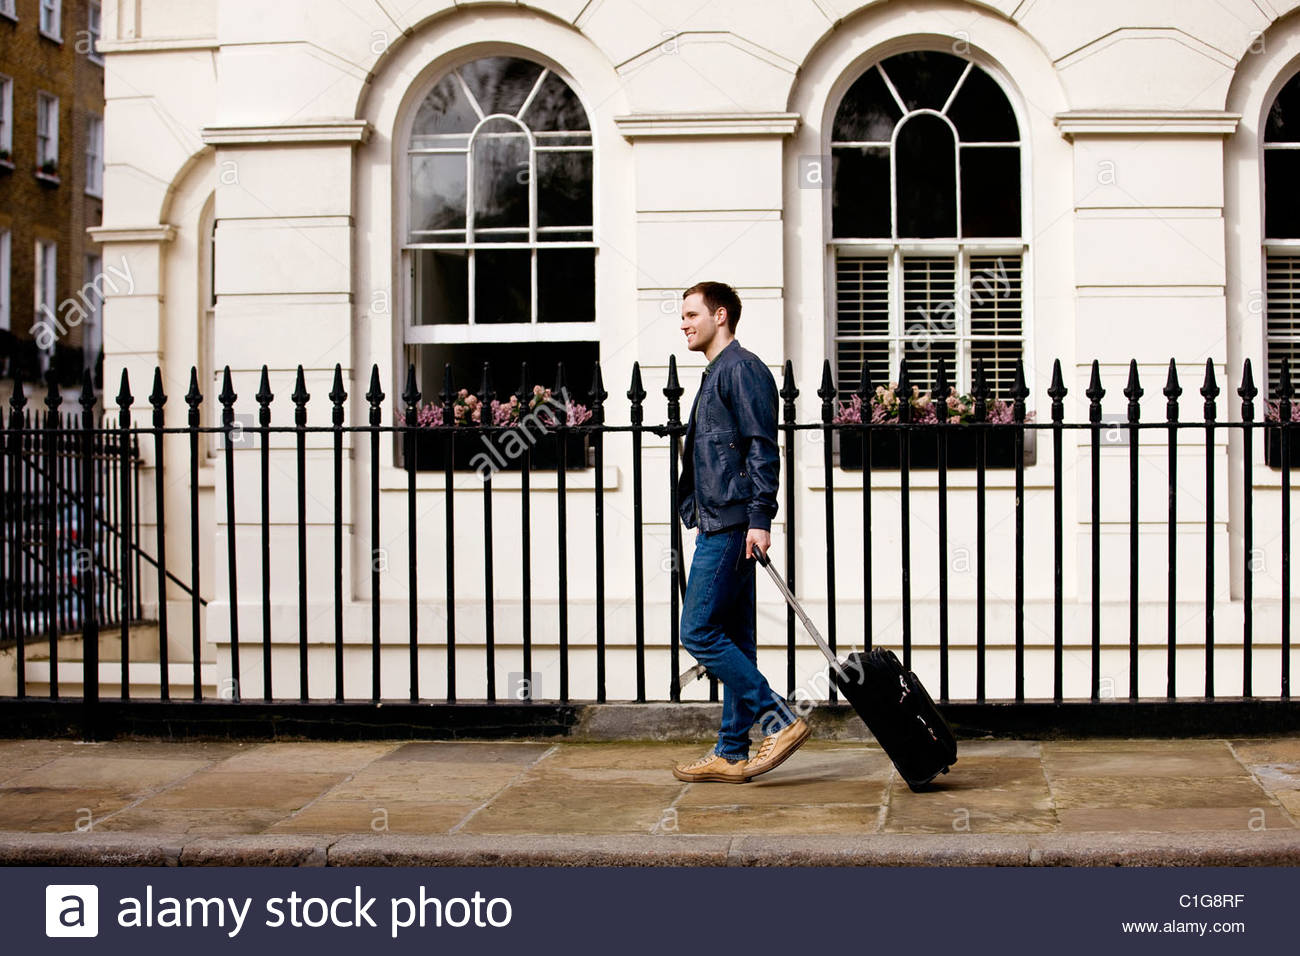 A young man pulling his suitcase in the street - Stock Image